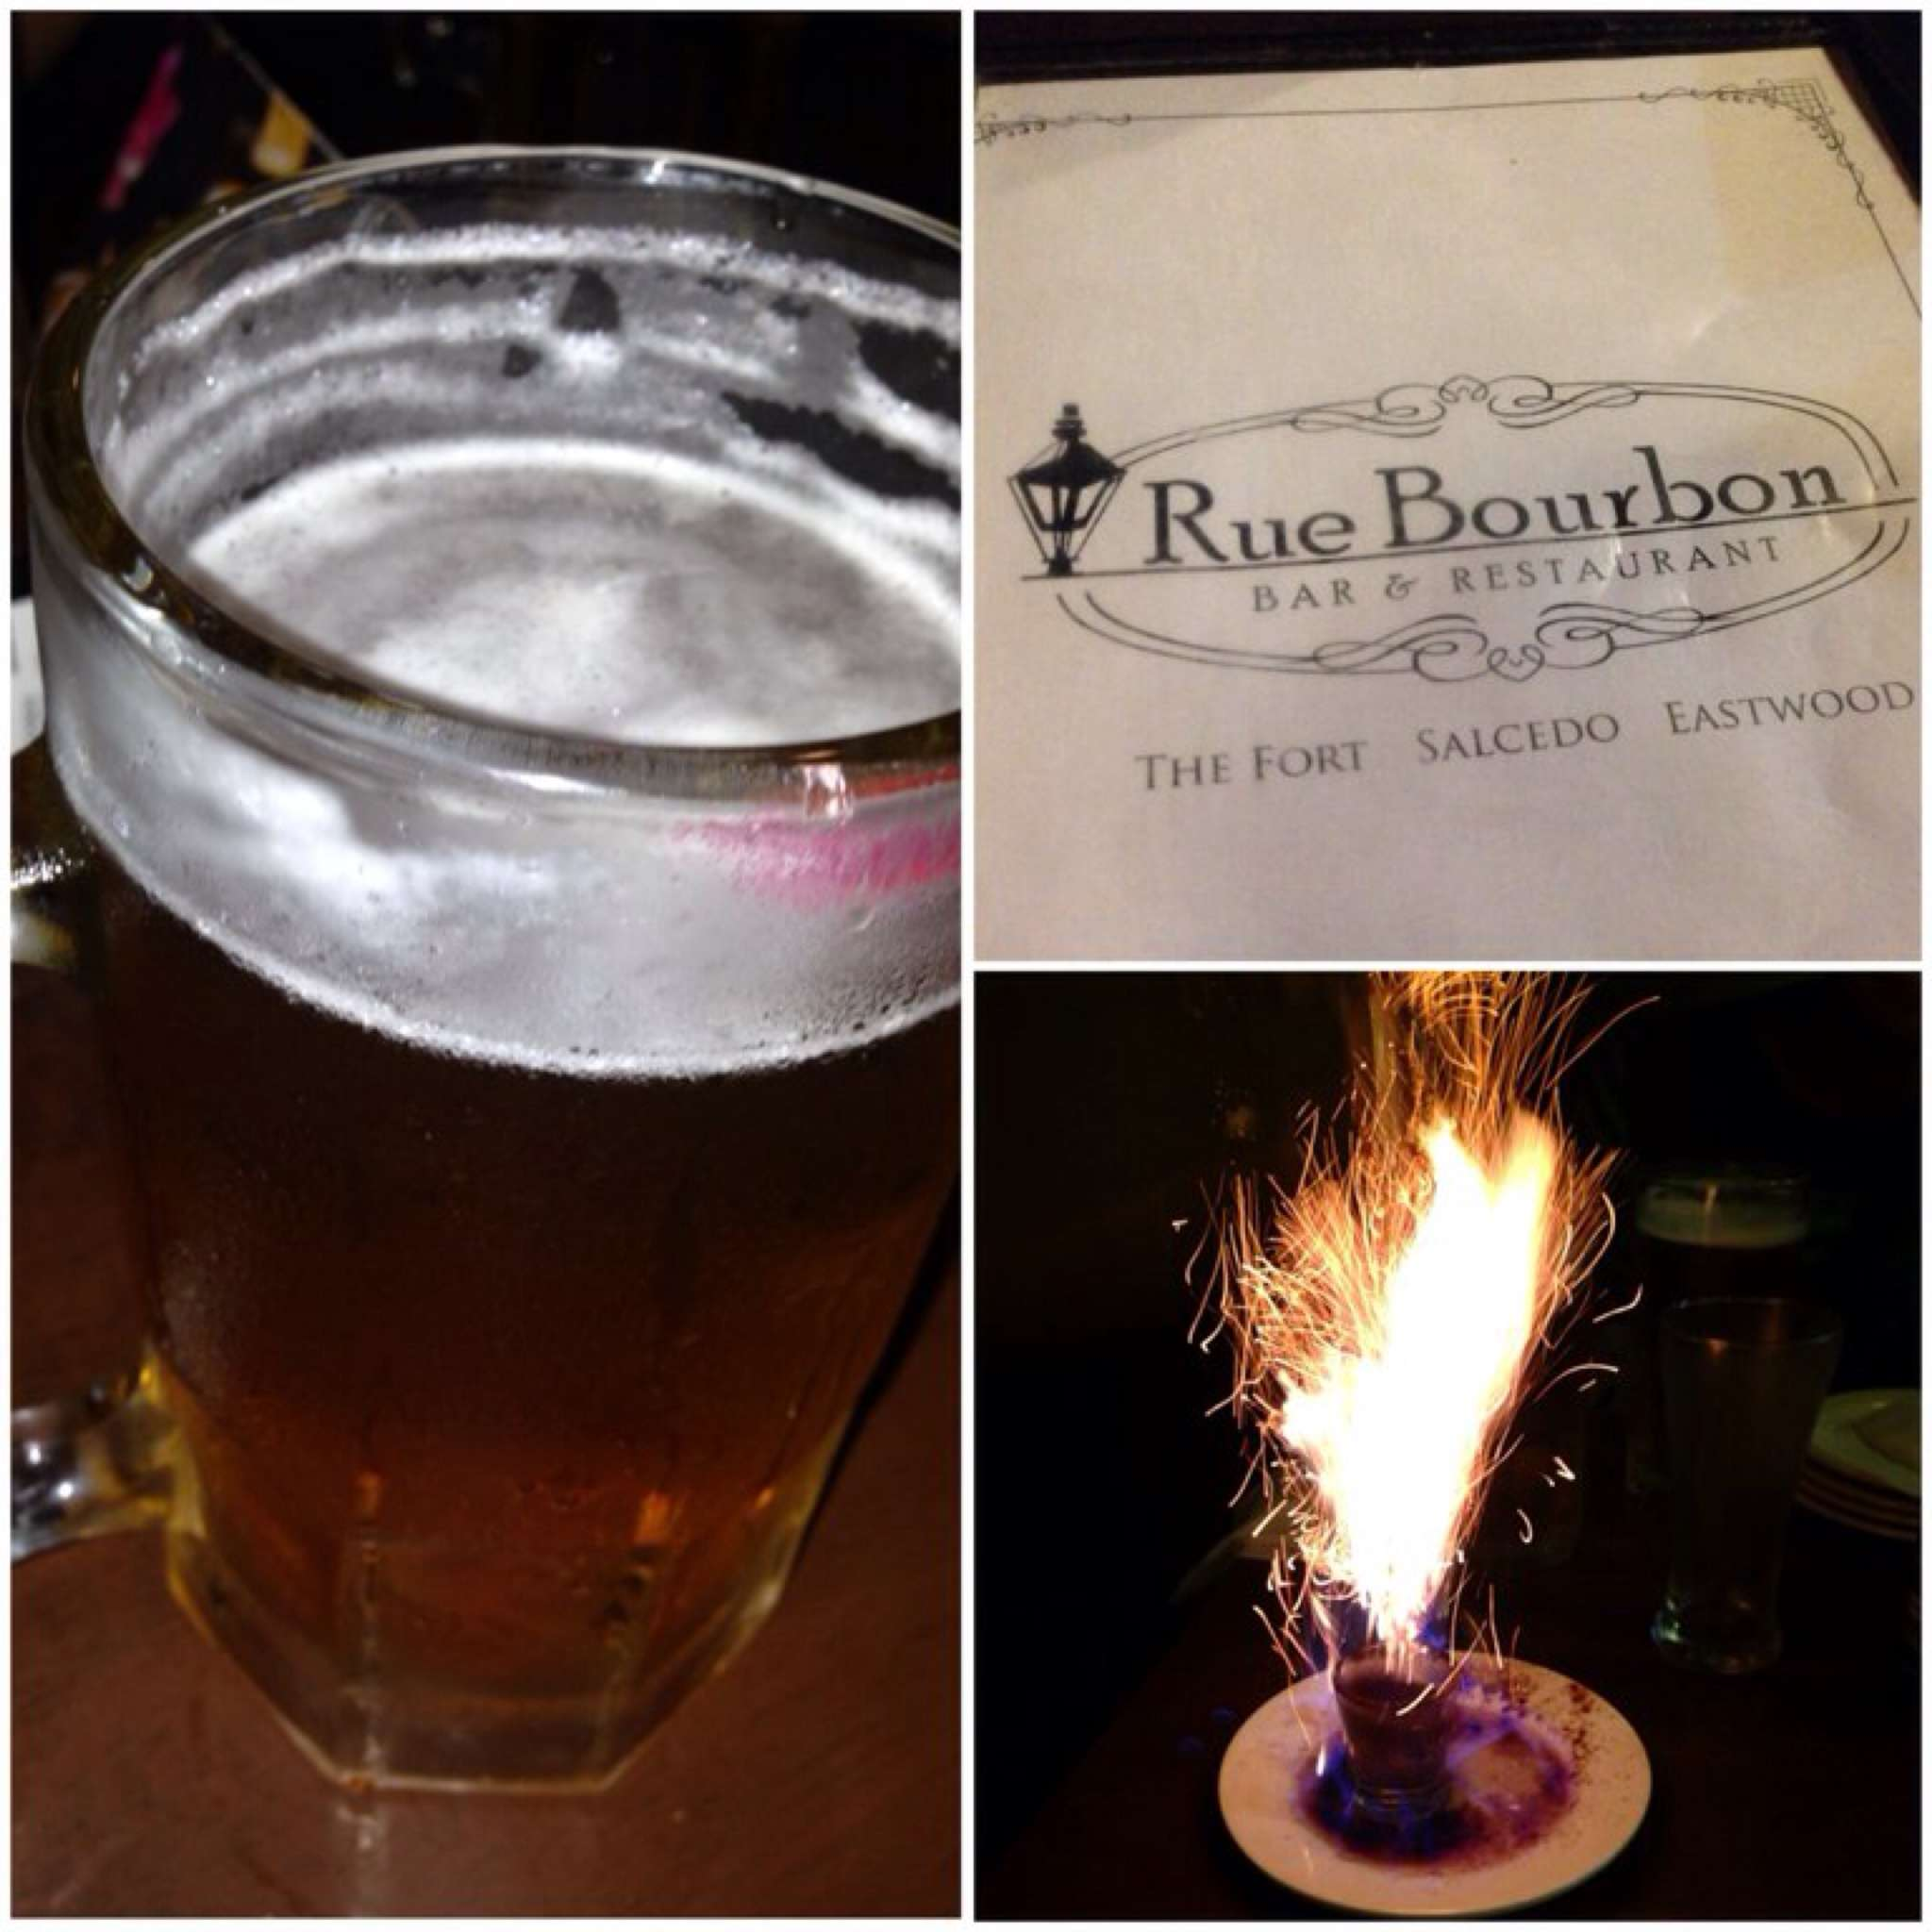 Rue Bourbon Bar & Restaurant